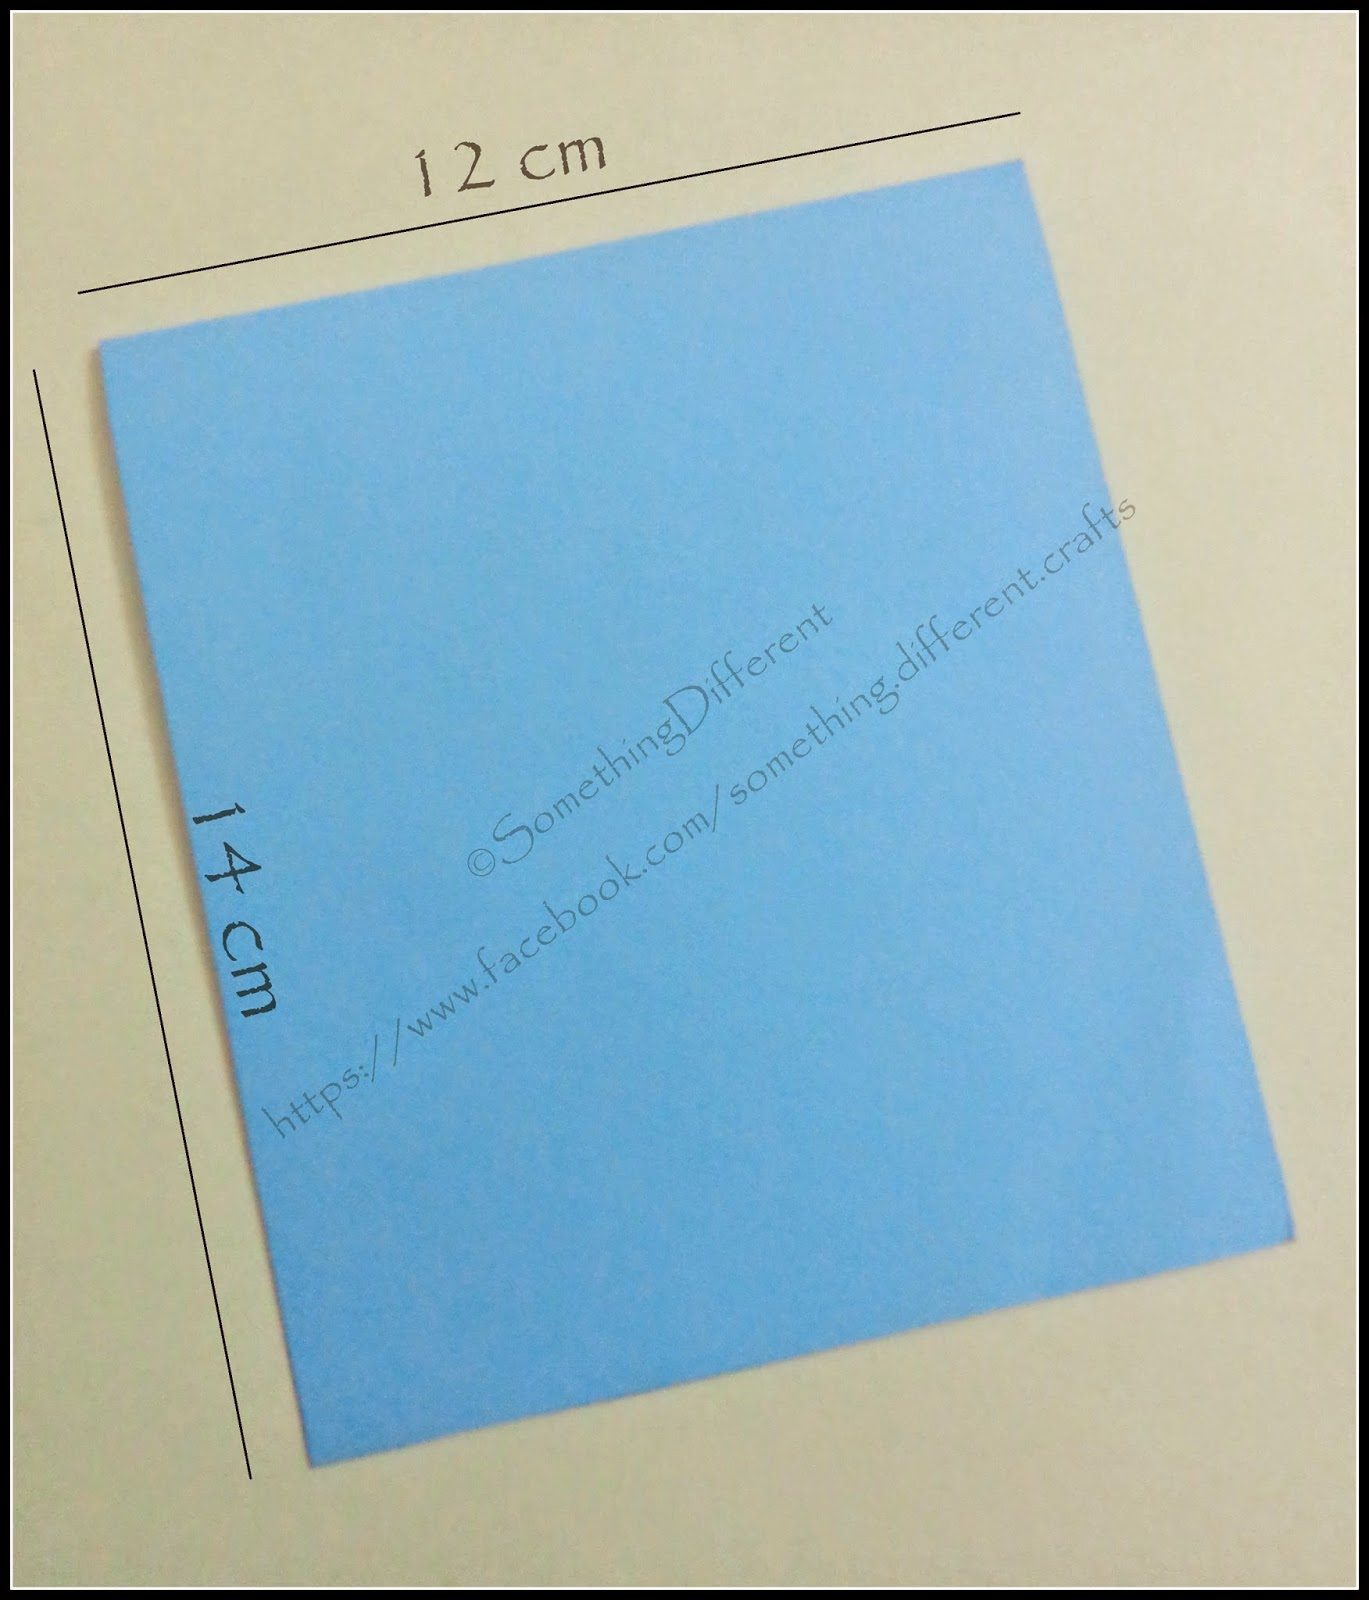 Something different valentines day special love is in the step 1 take a rectangular sheet of sky blue drawing paper having dimensions 28 cm x 12 cm fold it in half to have a card of size 14 cm x 12 cm kristyandbryce Images